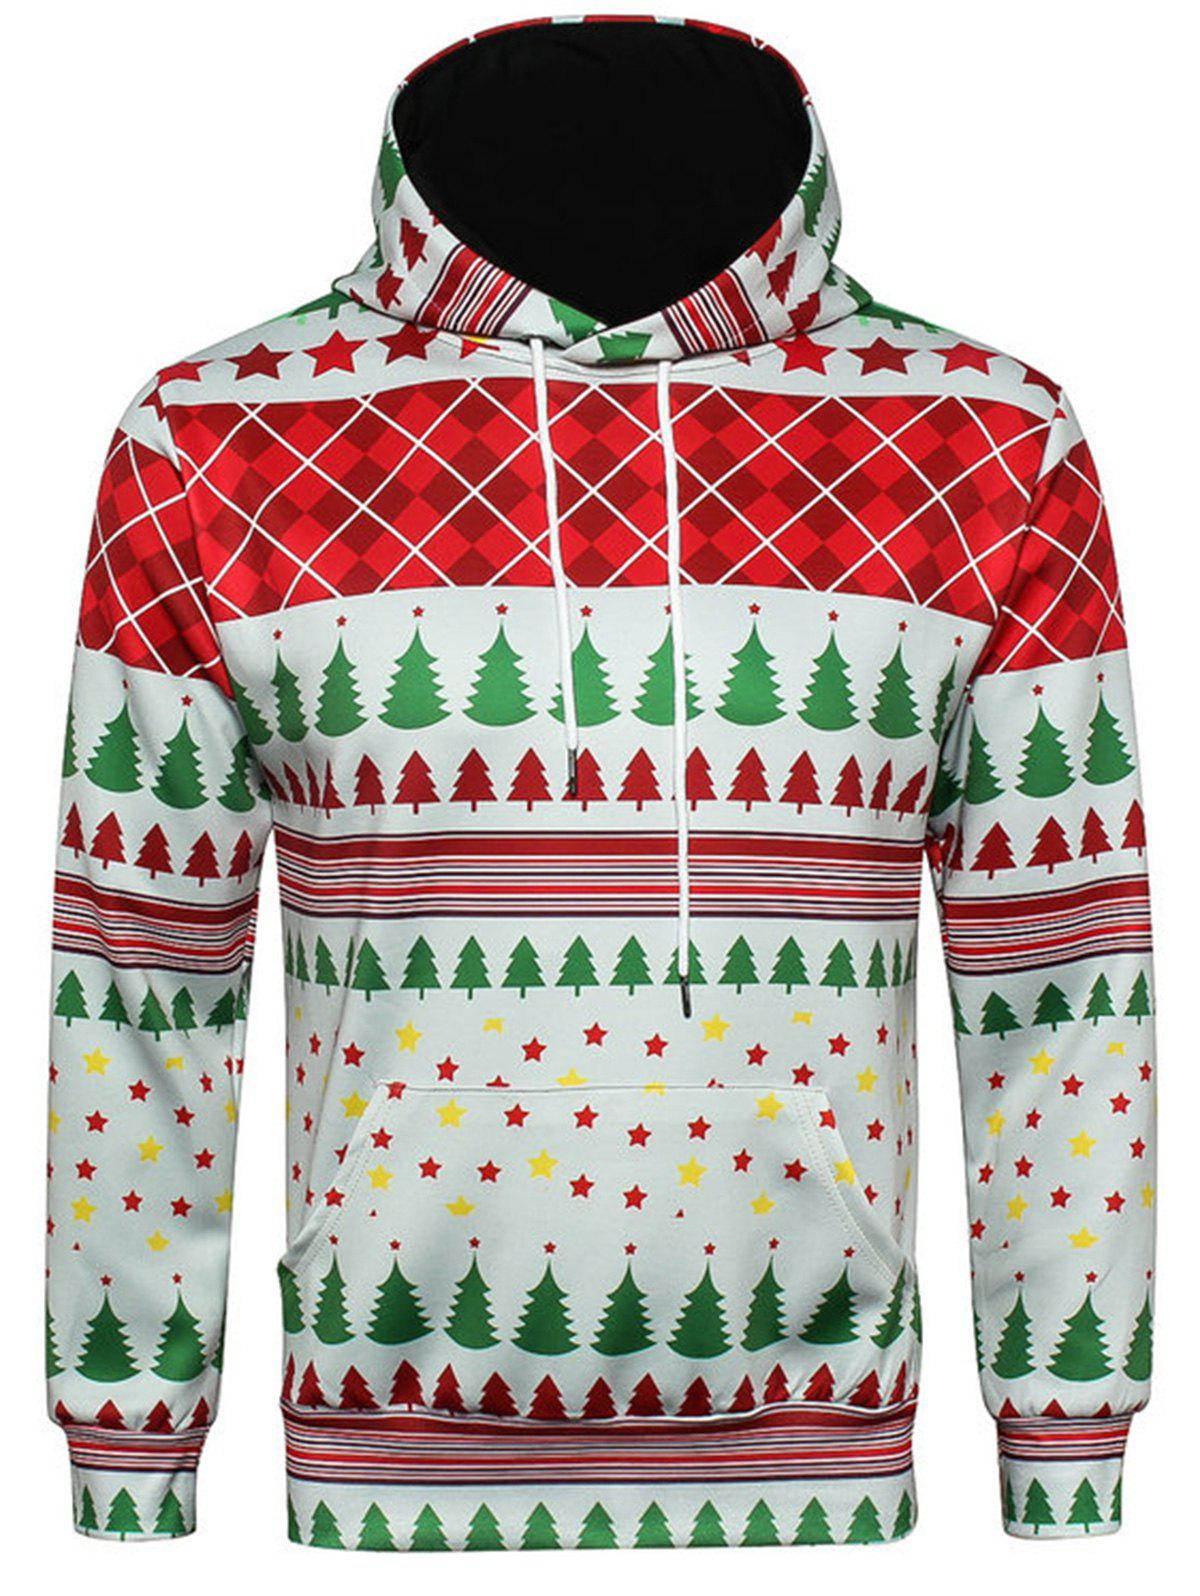 Christmas Tartan Star Print Pullover HoodieMEN<br><br>Size: XL; Color: COLORMIX; Material: Cotton,Polyester; Clothes Type: Hoodie; Shirt Length: Regular; Sleeve Length: Full; Style: Fashion; Patterns: Geometric,Plaid,Print,Stars; Thickness: Regular; Occasion: Casual ,Daily Use,Going Out; Weight: 0.5900kg; Package Contents: 1 x Hoodie;